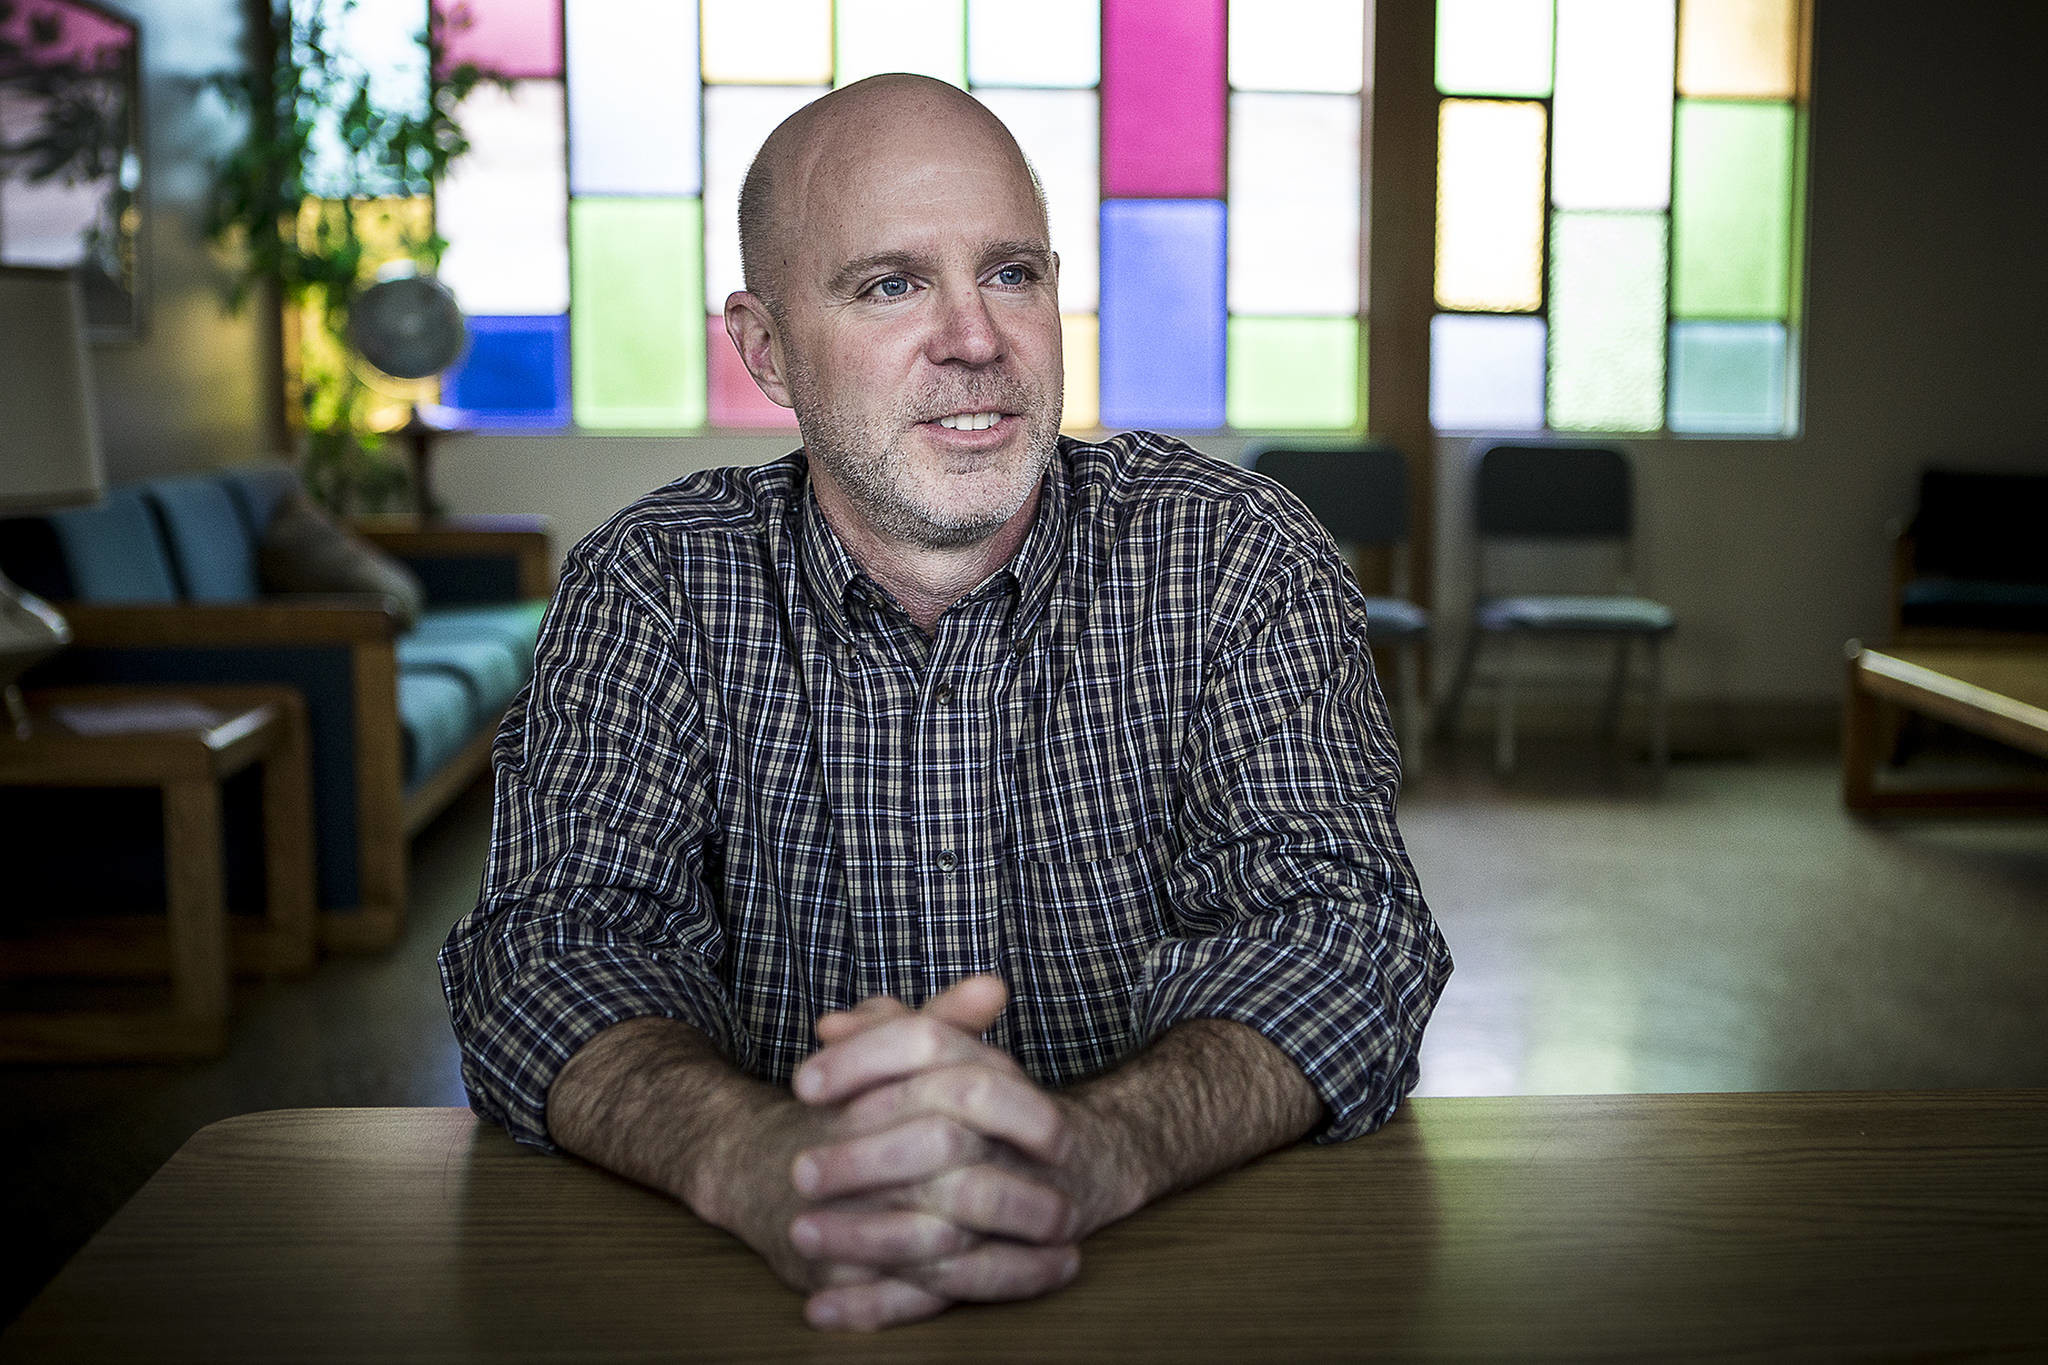 A native Seattleite, Hallack Greider, is Maplewood Presbyterian Church's new pastor in Edmonds. (Ian Terry / The Herald)